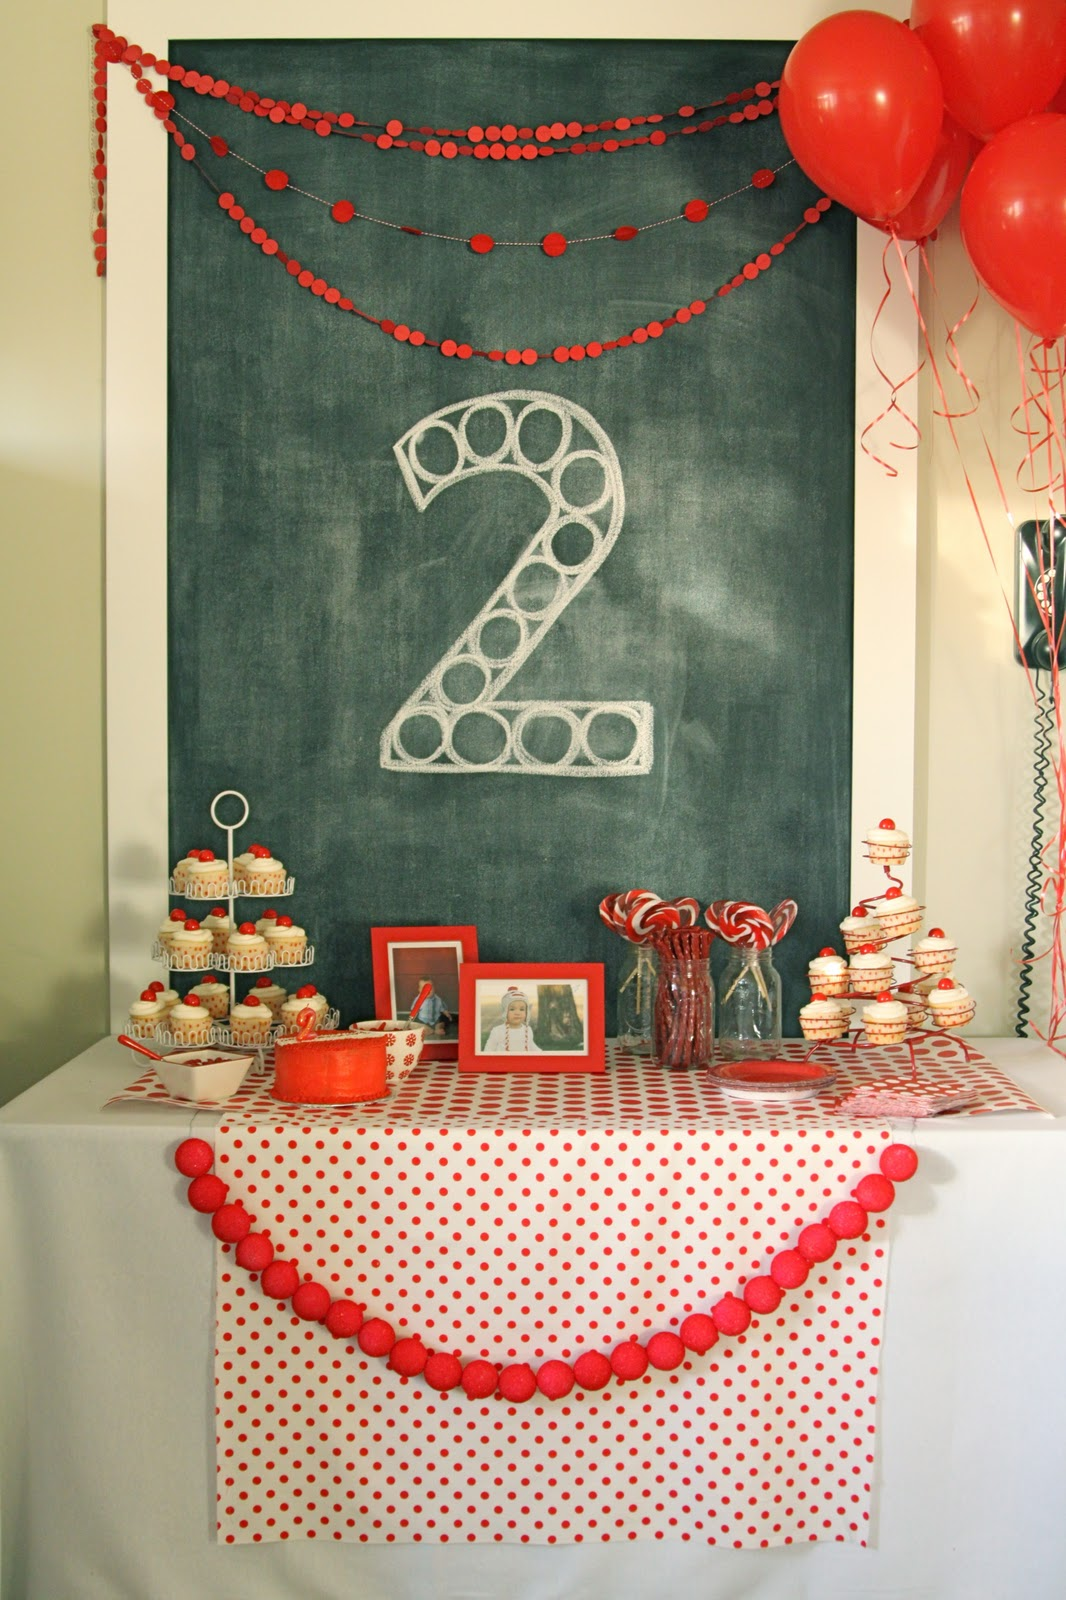 2 Year Old Birthday Decorations ~ Cake Ideas and Birthday Decorations